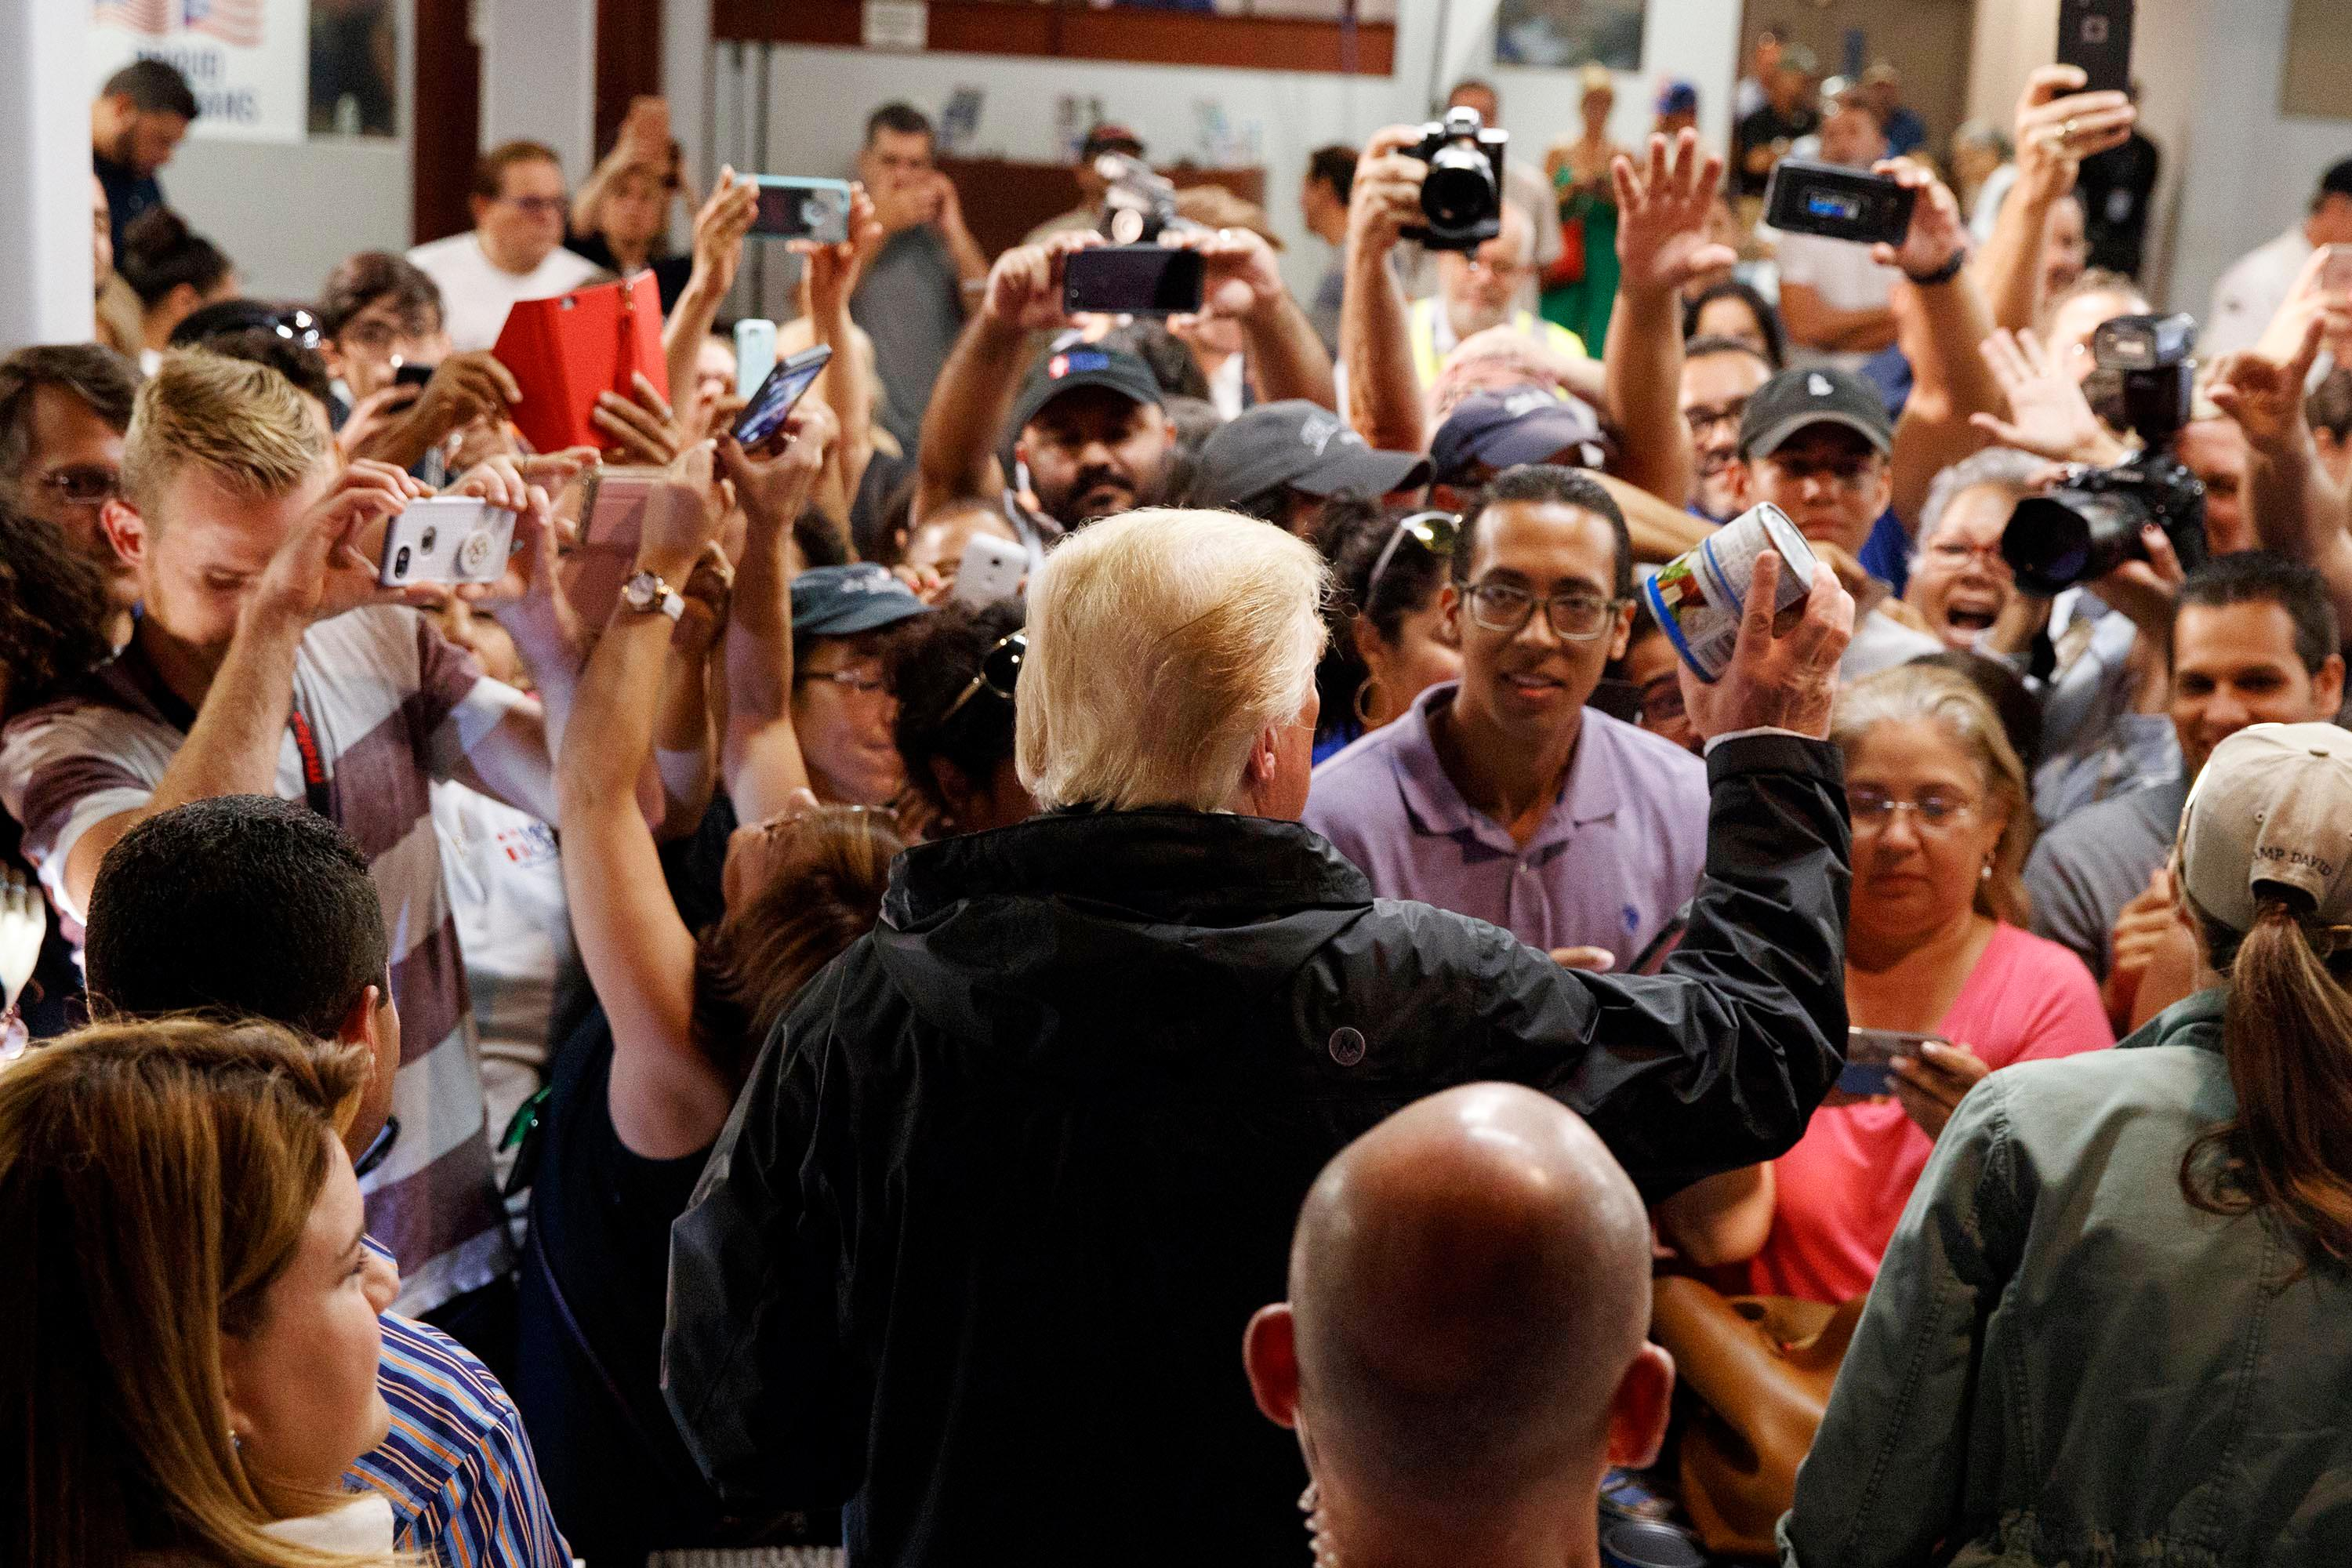 President Donald Trump hands out canned goods and other supplies at Calvary Chapel, Tuesday, Oct. 3, 2017, in Guaynabo, Puerto Rico. Trump is in Puerto Rico to survey hurricane damage. (AP Photo/Evan Vucci)